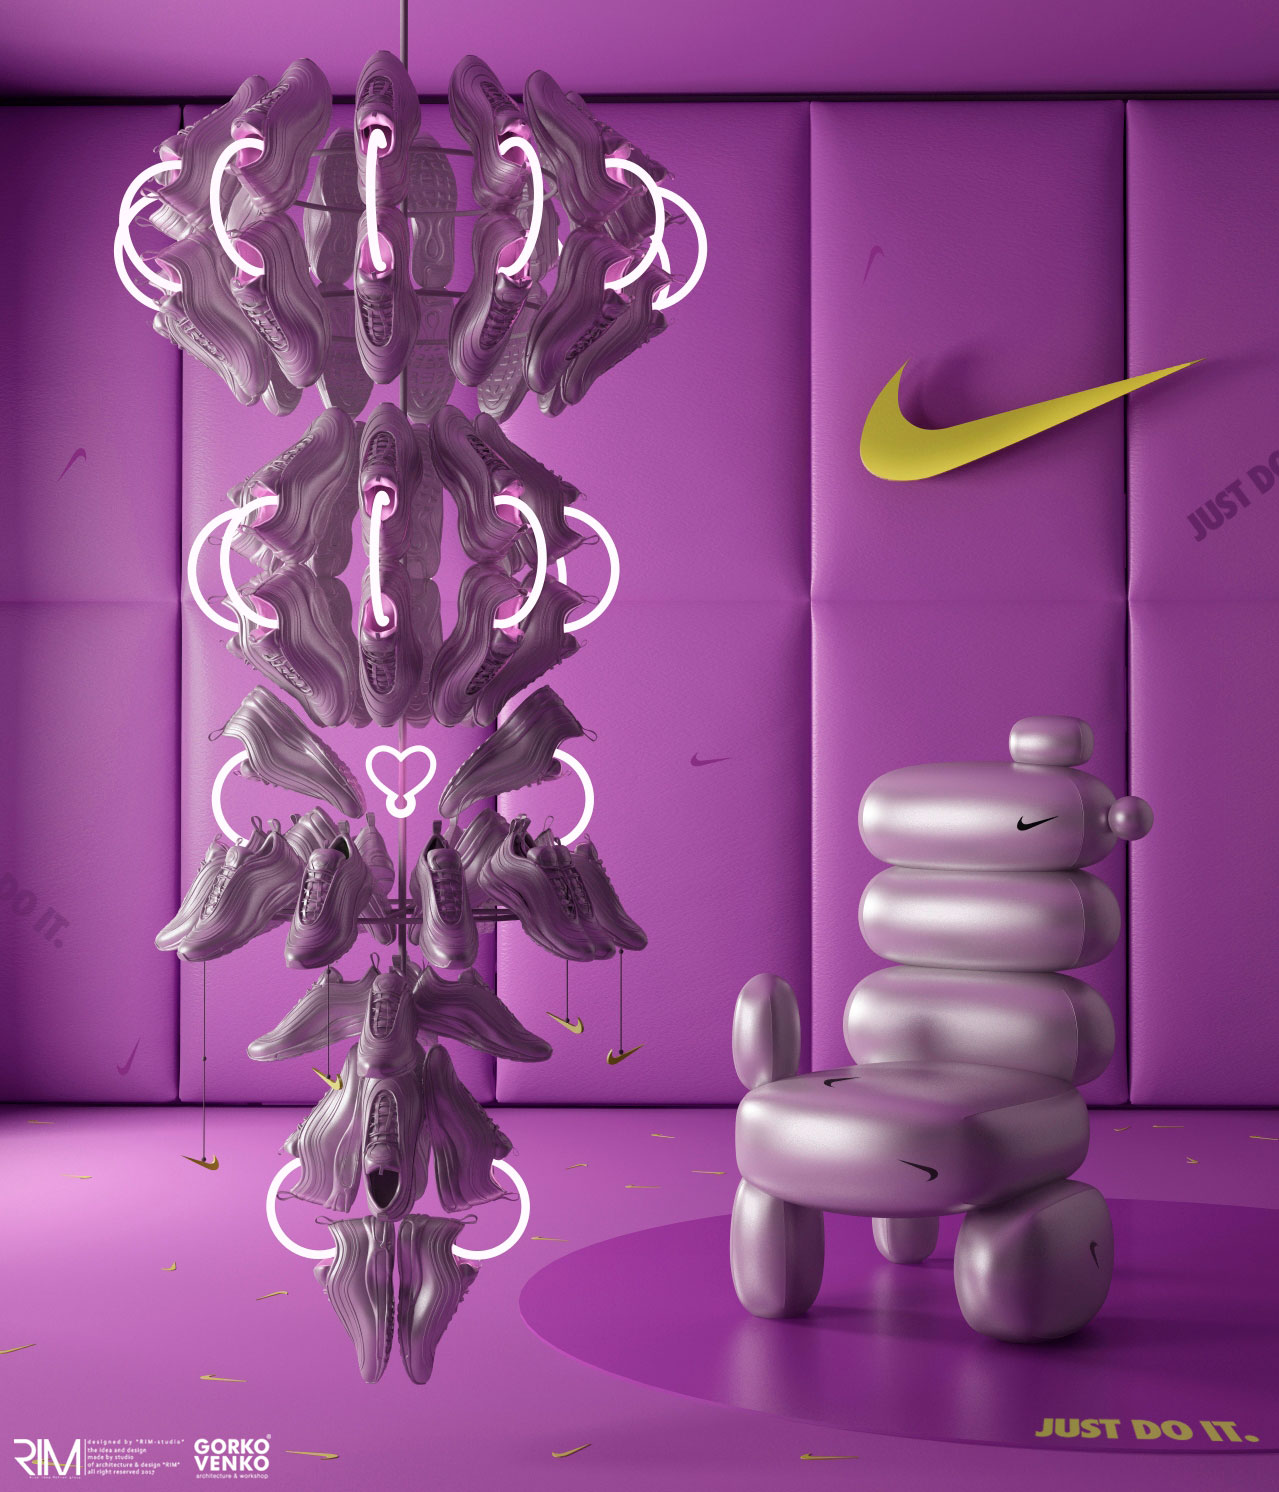 Nike Air Max Day 2020 conceptual expressive furniture collection - Изображение